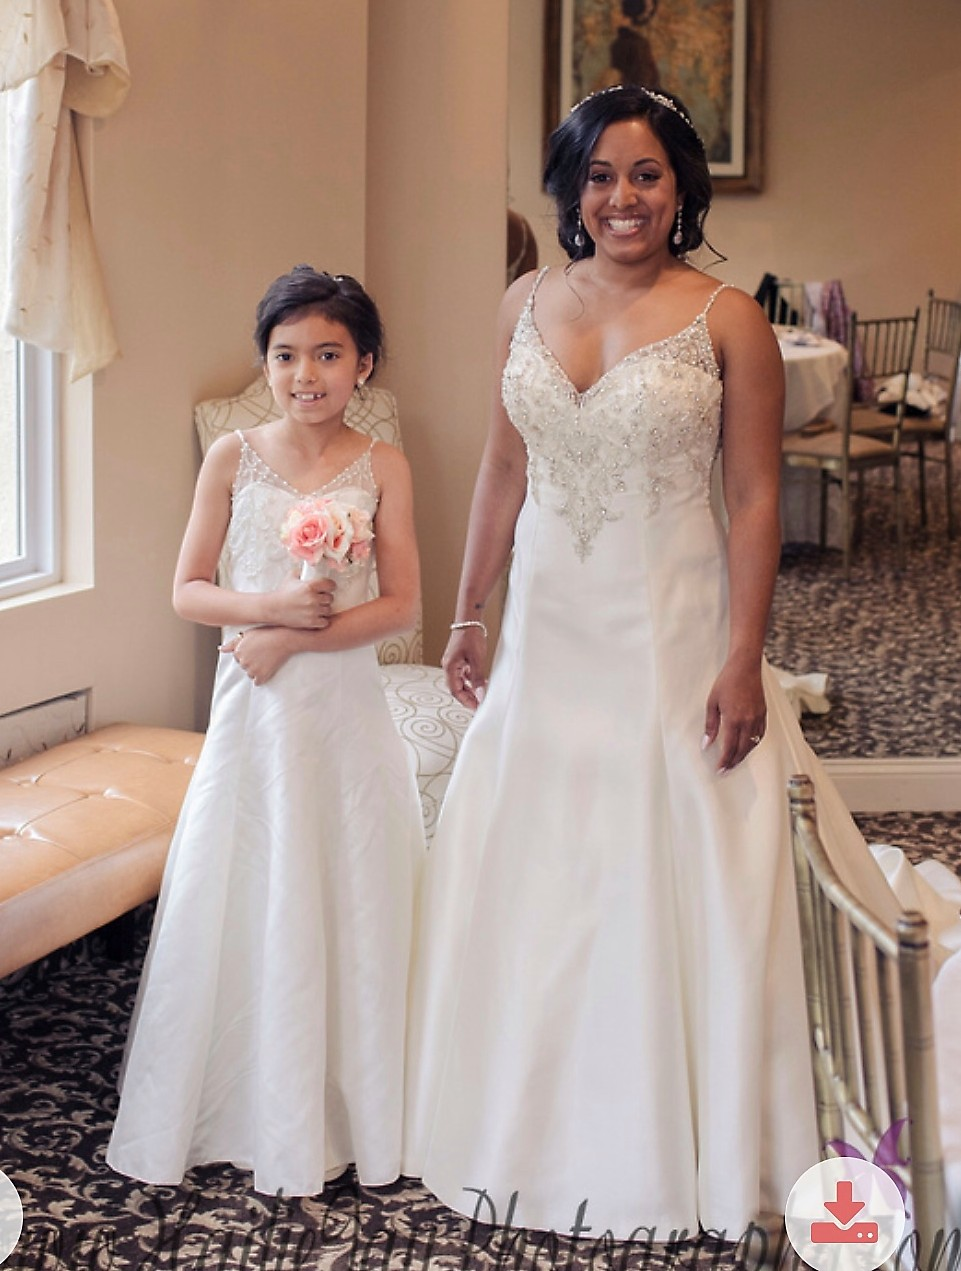 Ivory A-line flower girl dress with sheer illusion neckline and crystal designed bodice